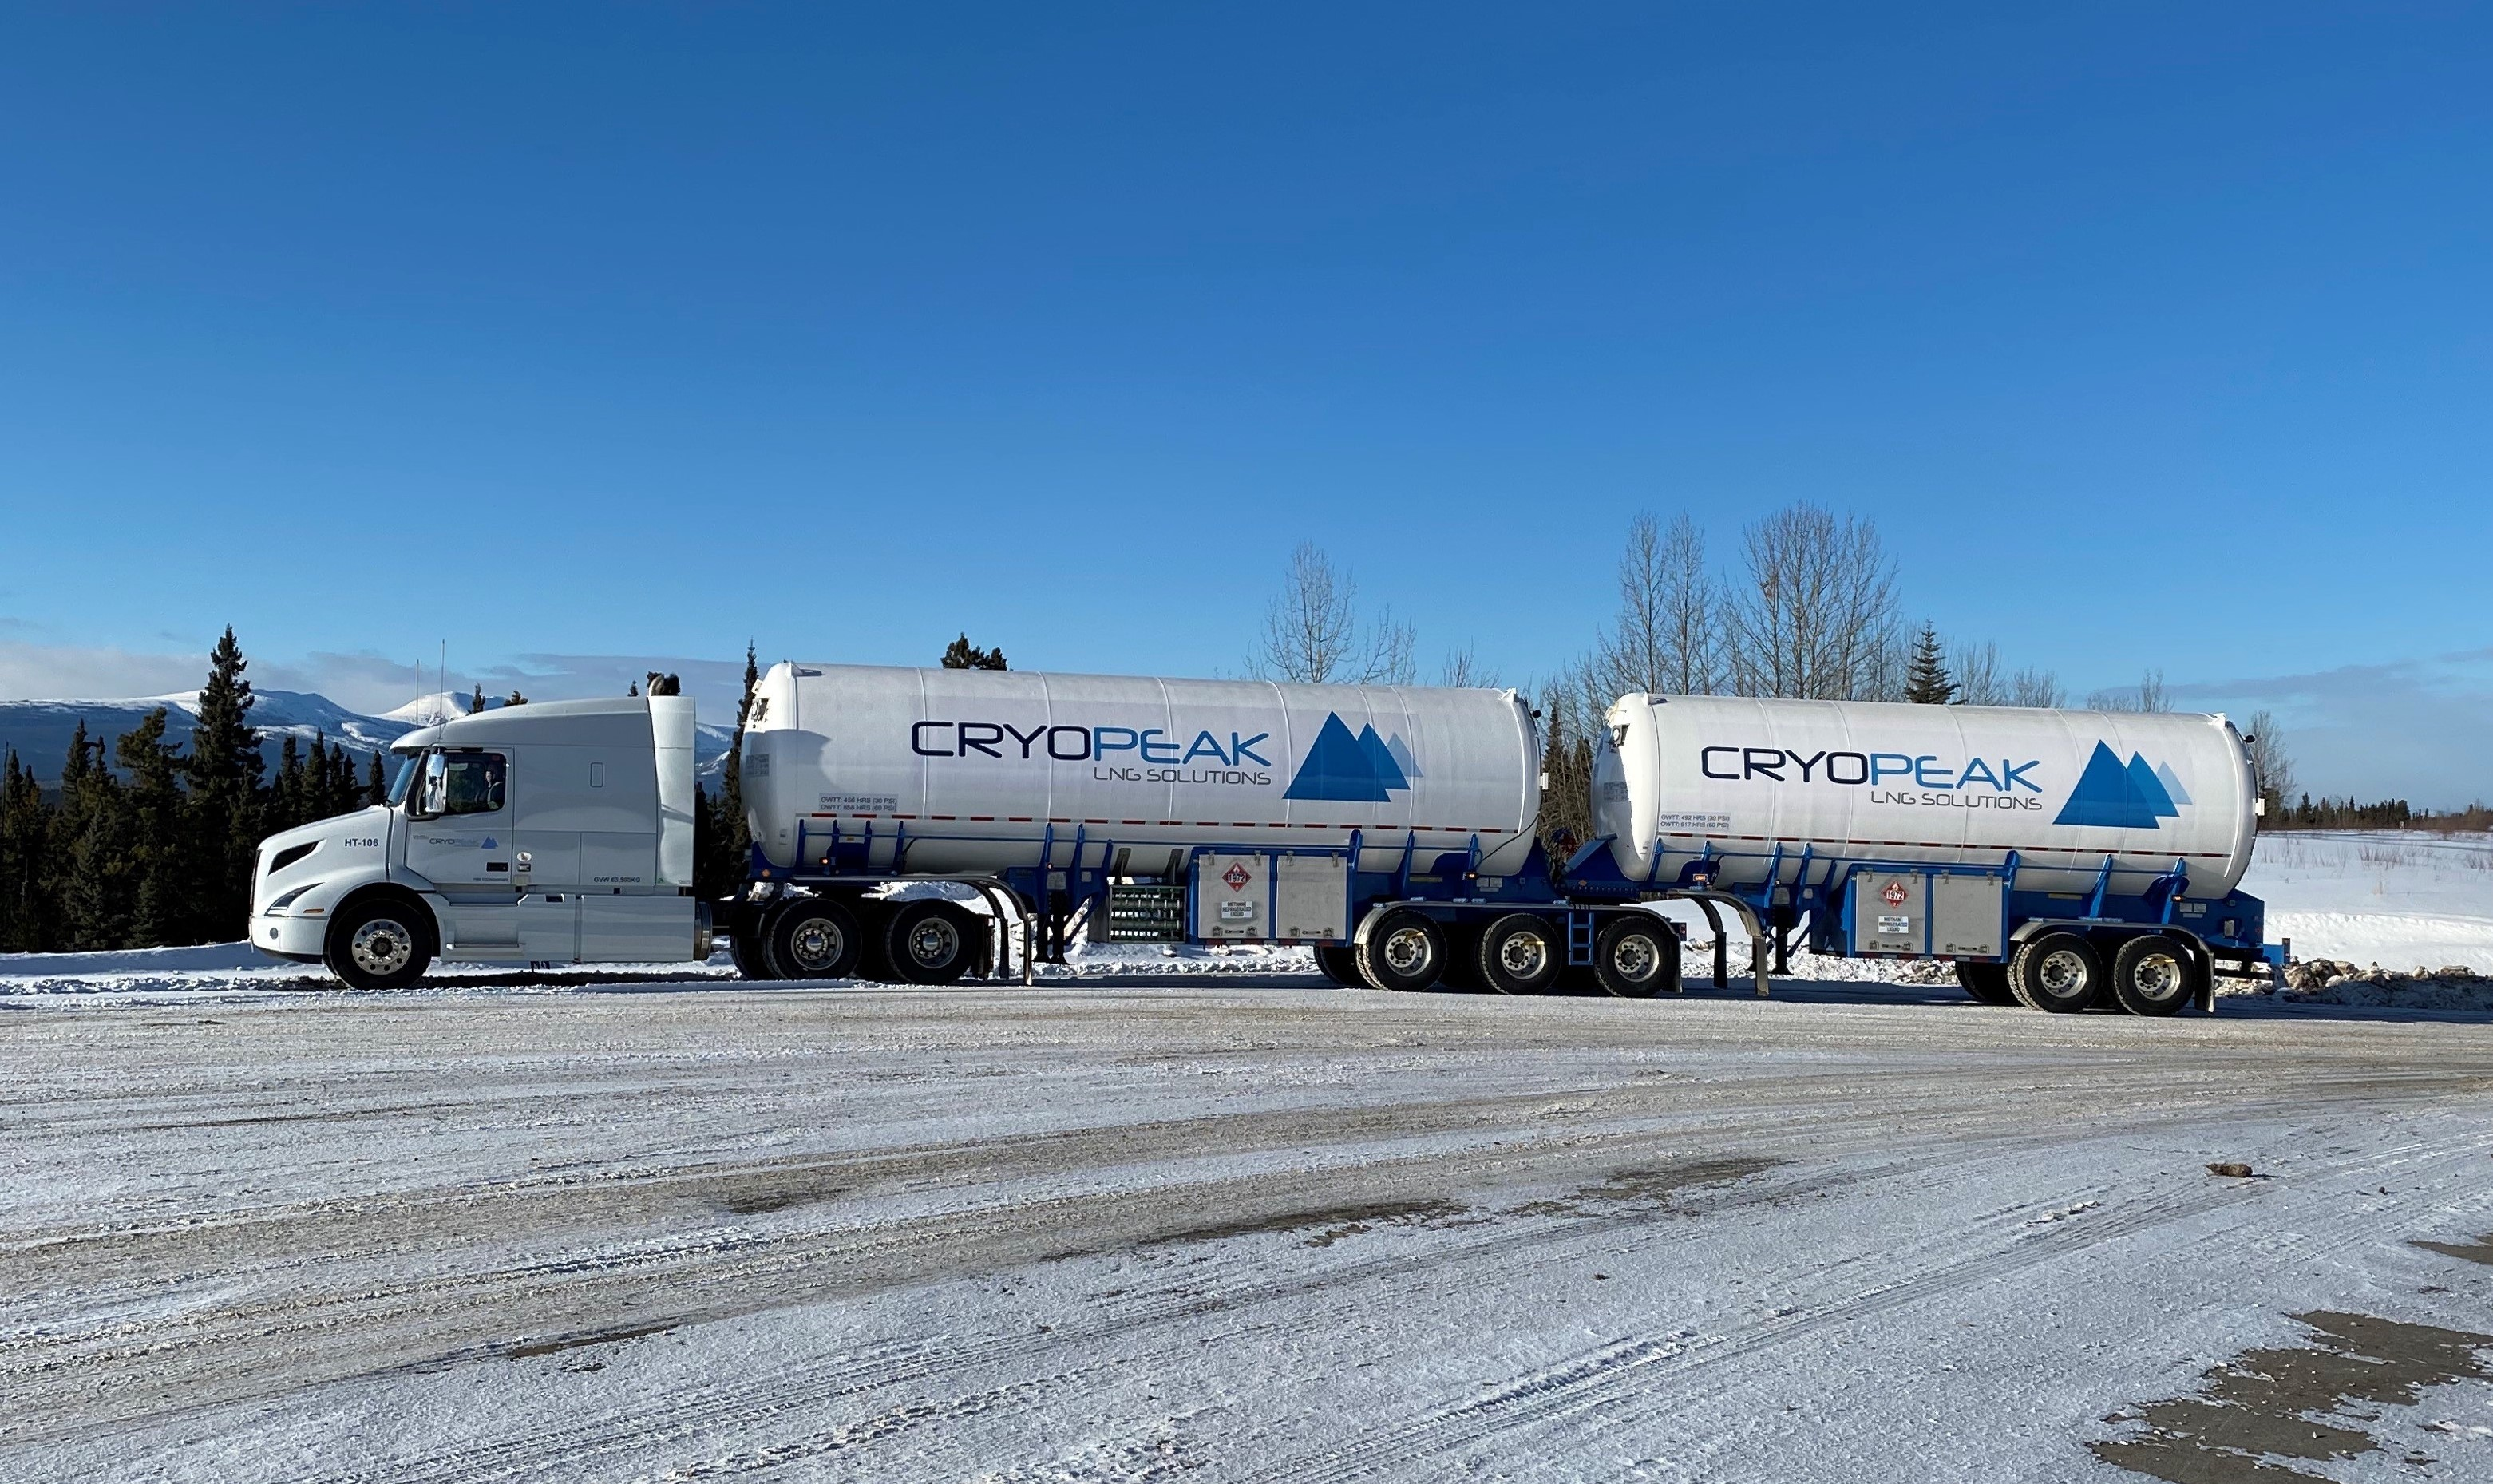 Cryopeak LNG Solutions Corporation Completes Largest Ever North American Delivery Of Liquefied Natural Gas